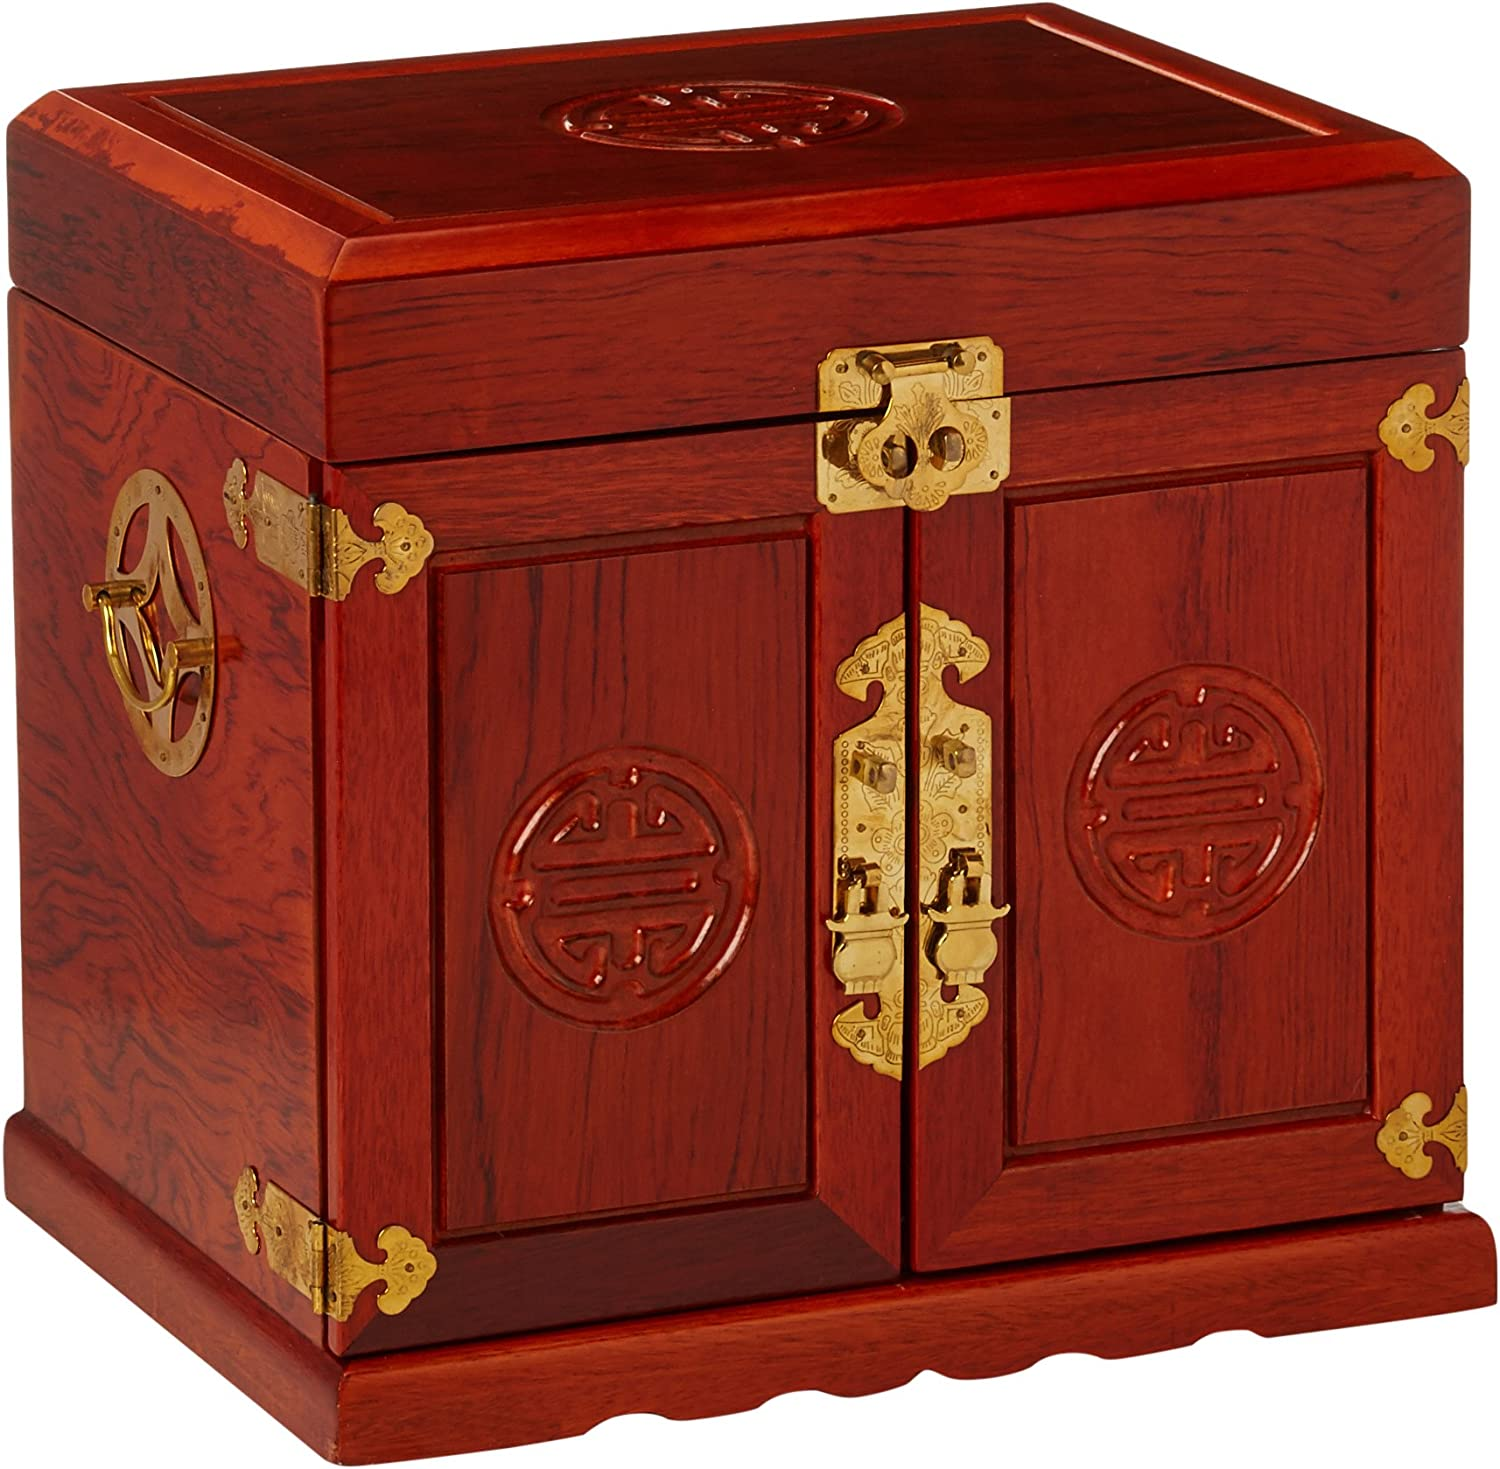 Oriental Furniture Rosewood Jewelry Cabinet with 5 Drawers - Honey